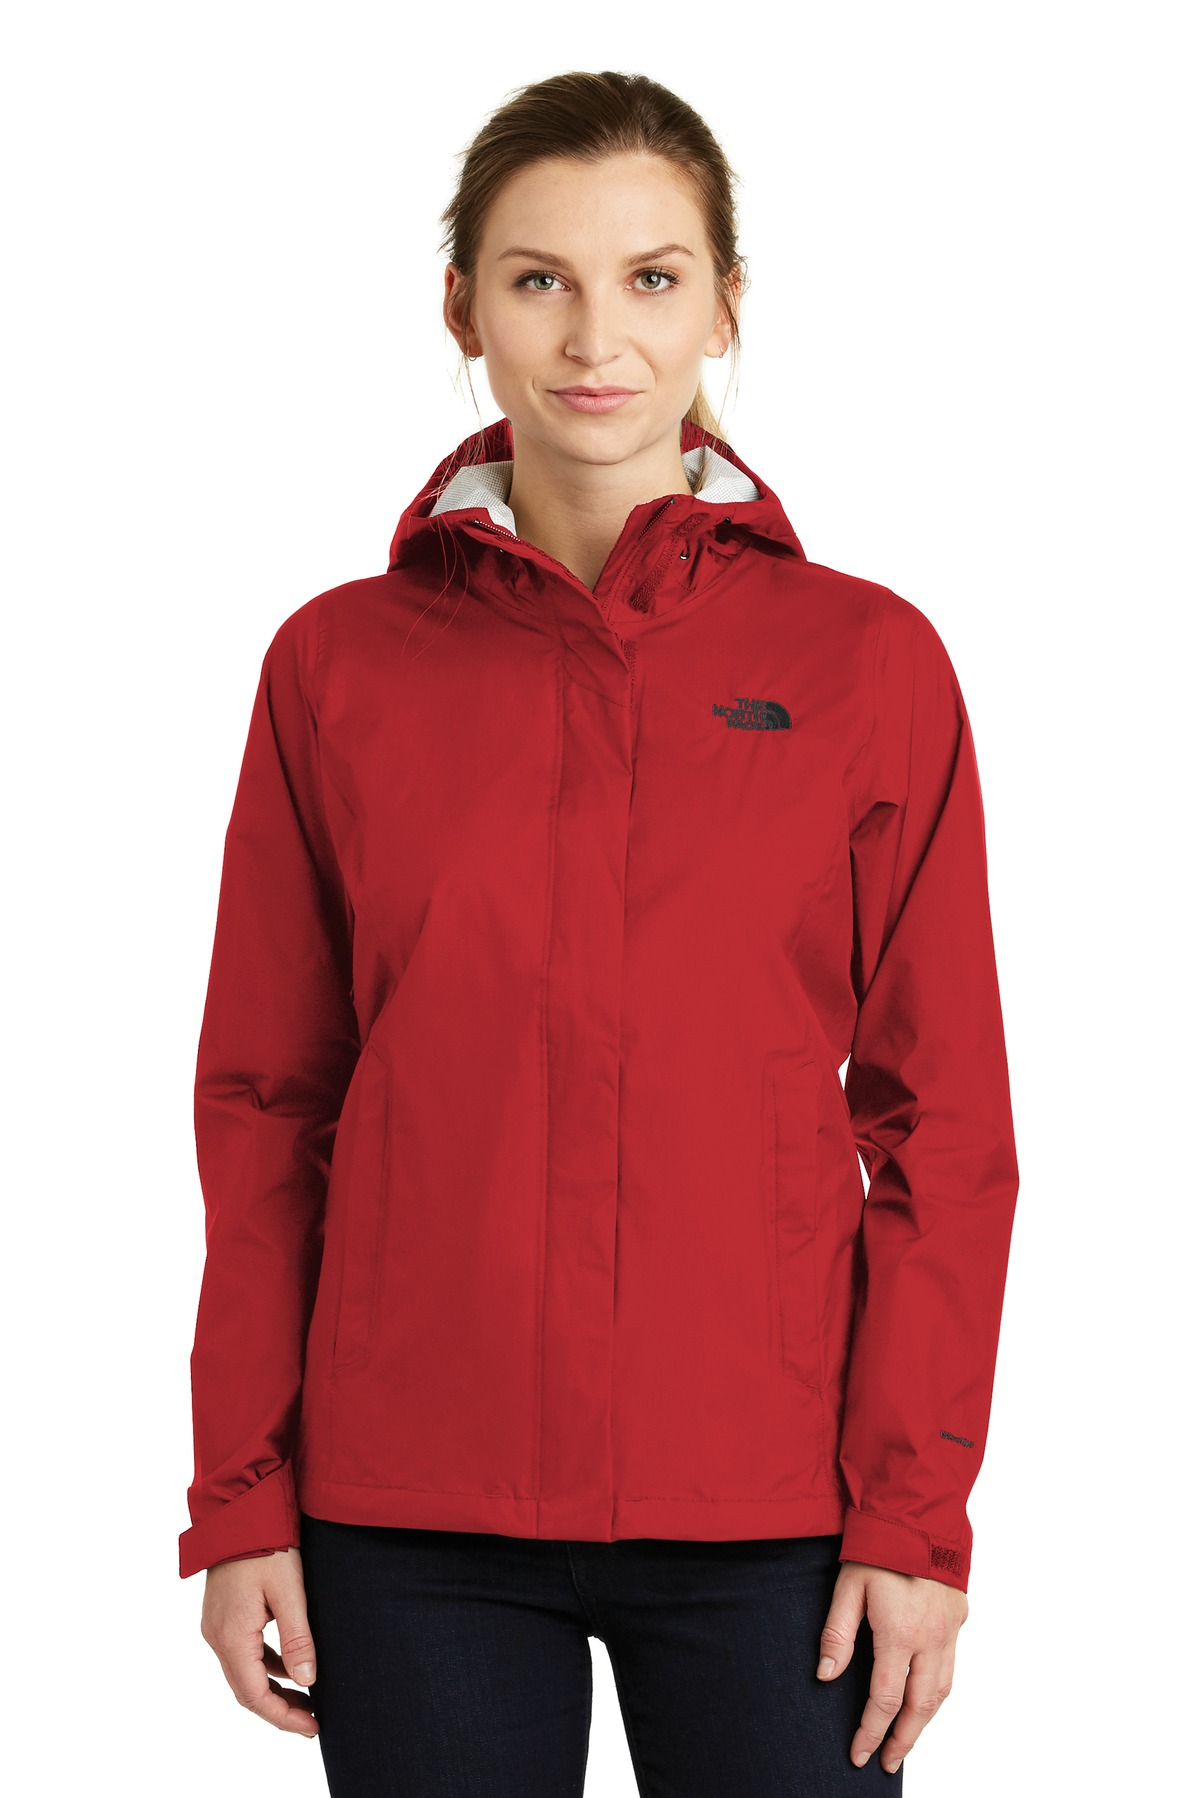 The North Face  ®  Ladies DryVent ™  Rain Jacket. NF0A3LH5 - Rage Red